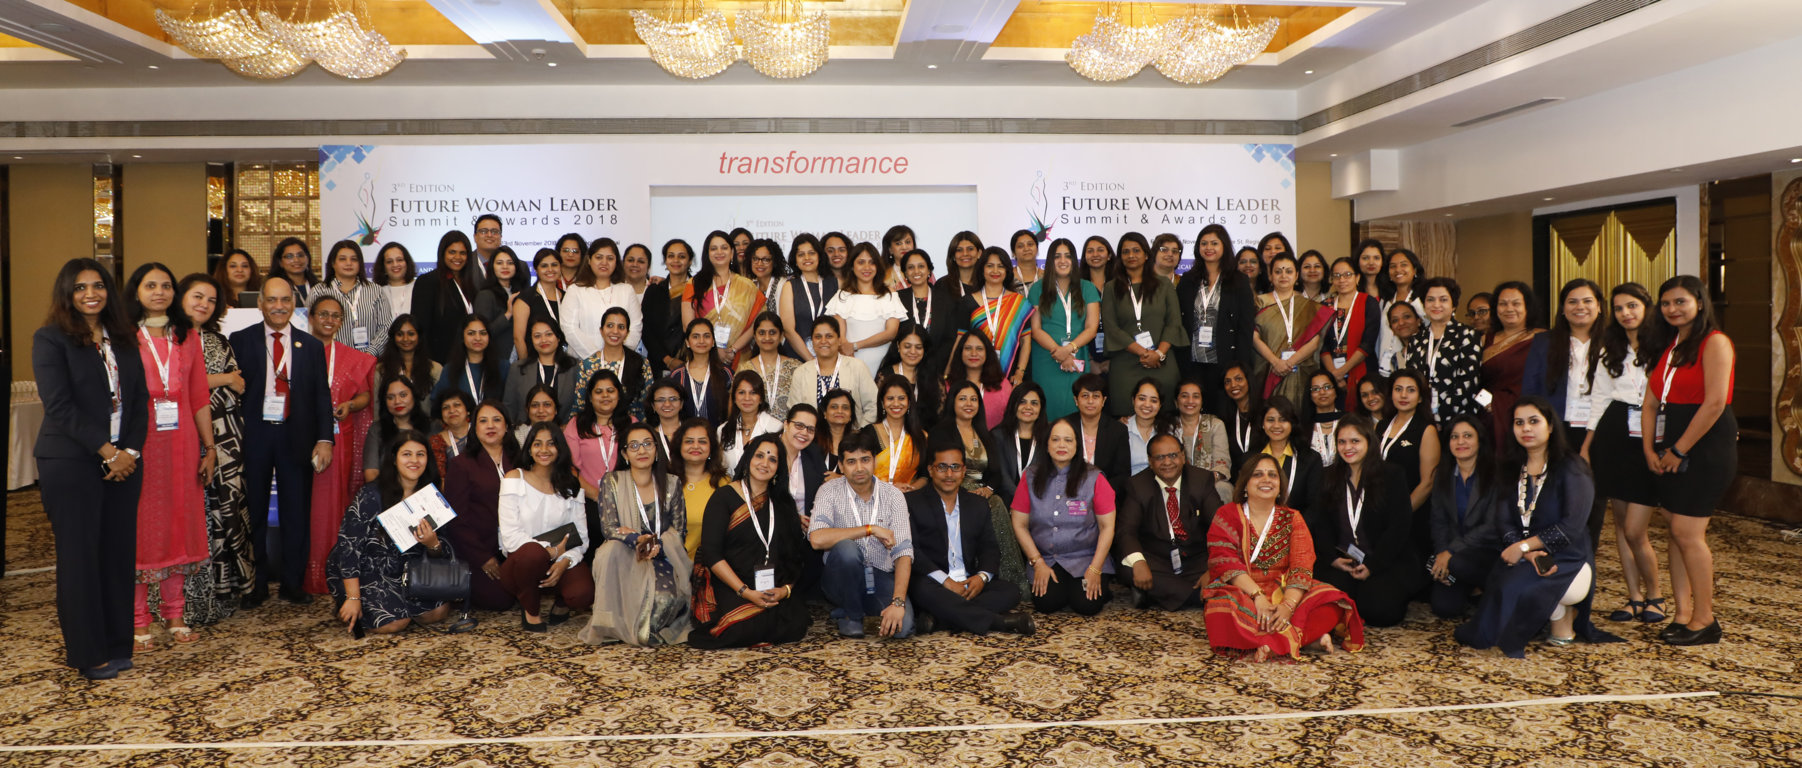 3rd Edition Future Woman Leader Summit & Awards